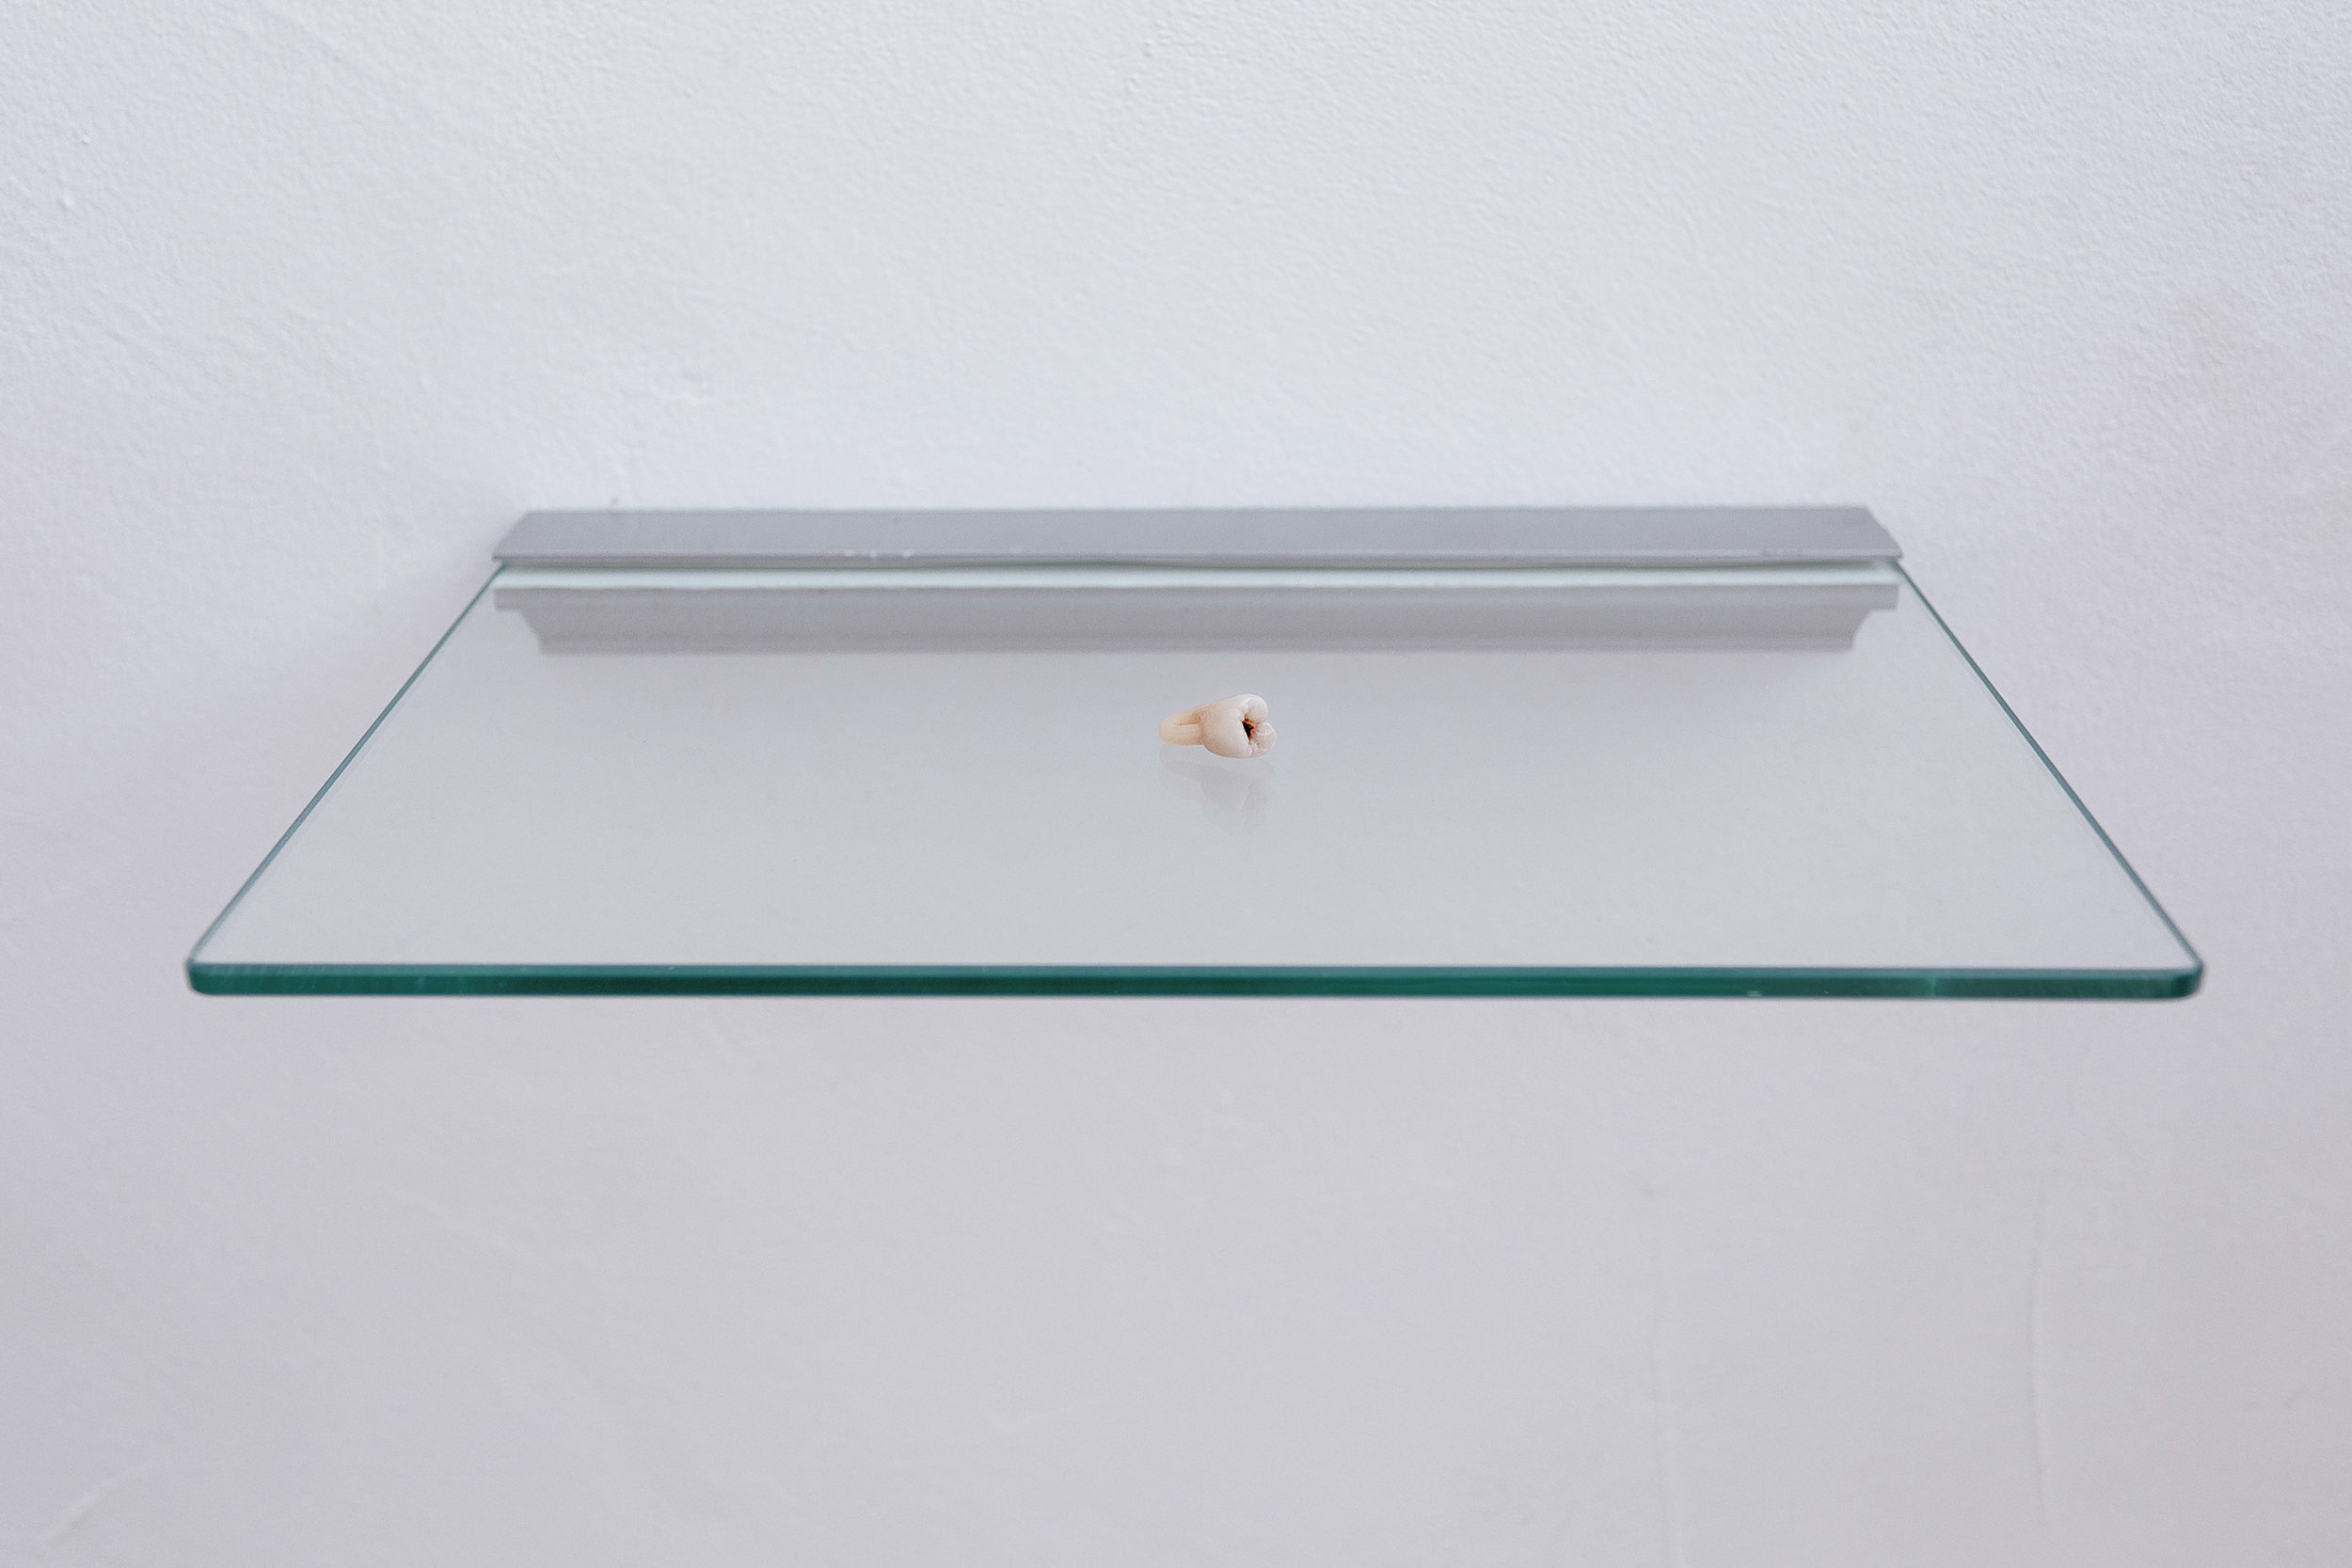 Augmented fragility , Rhizome, cast dental ceramic, 12x11x6mm, London 2014